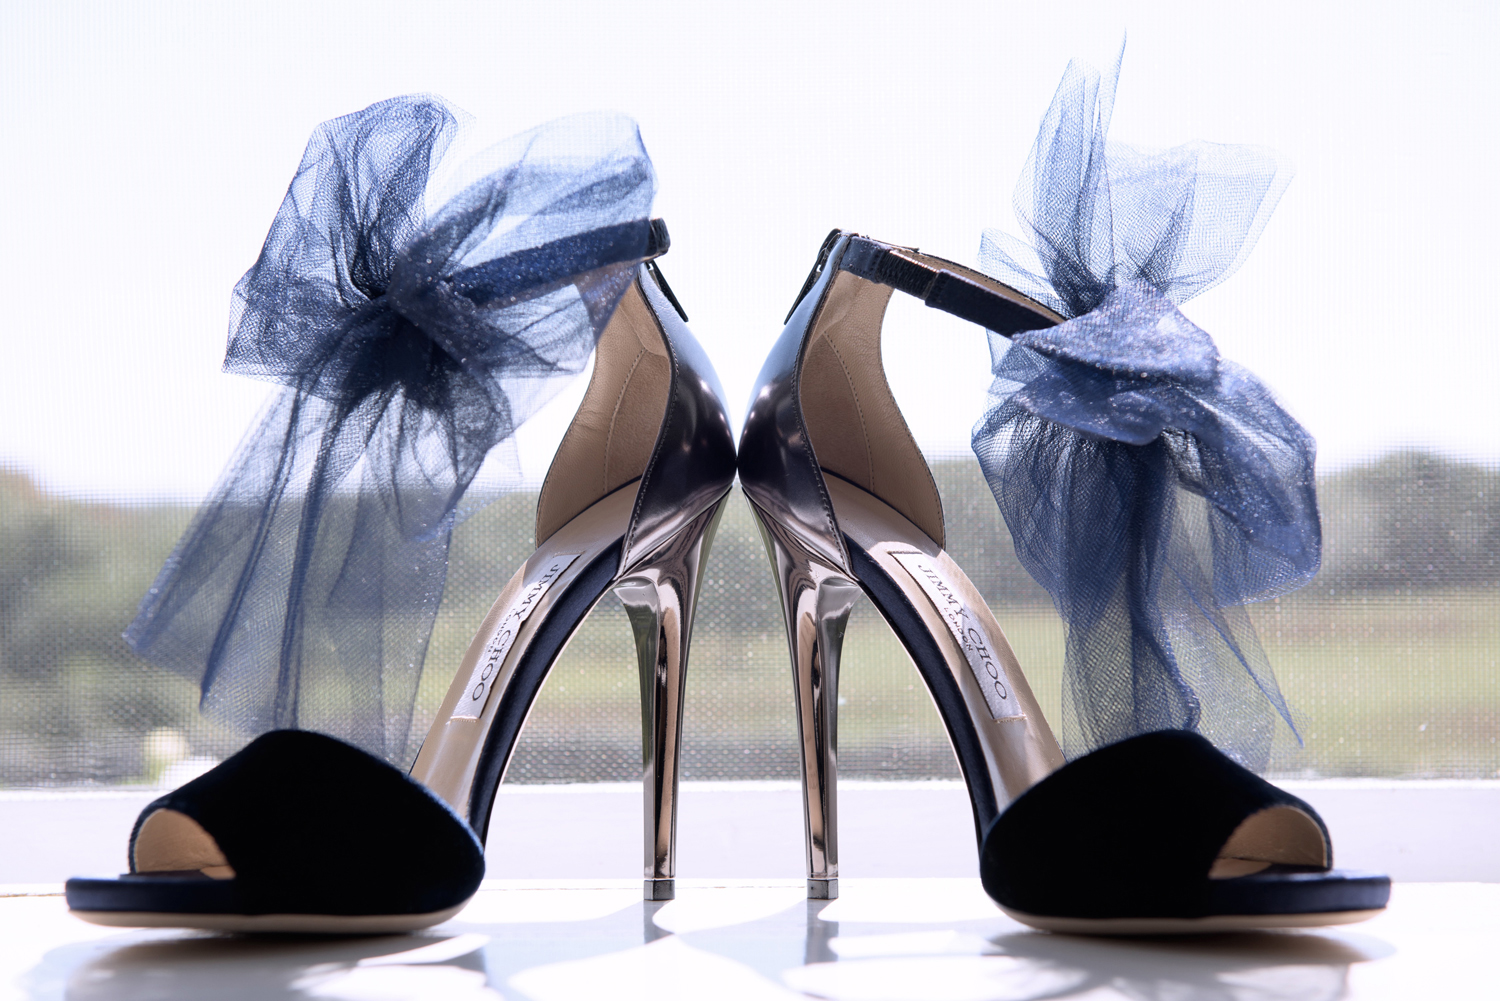 navy jimmy choo shoes with tulle bow at ankle strap, wedding shoes